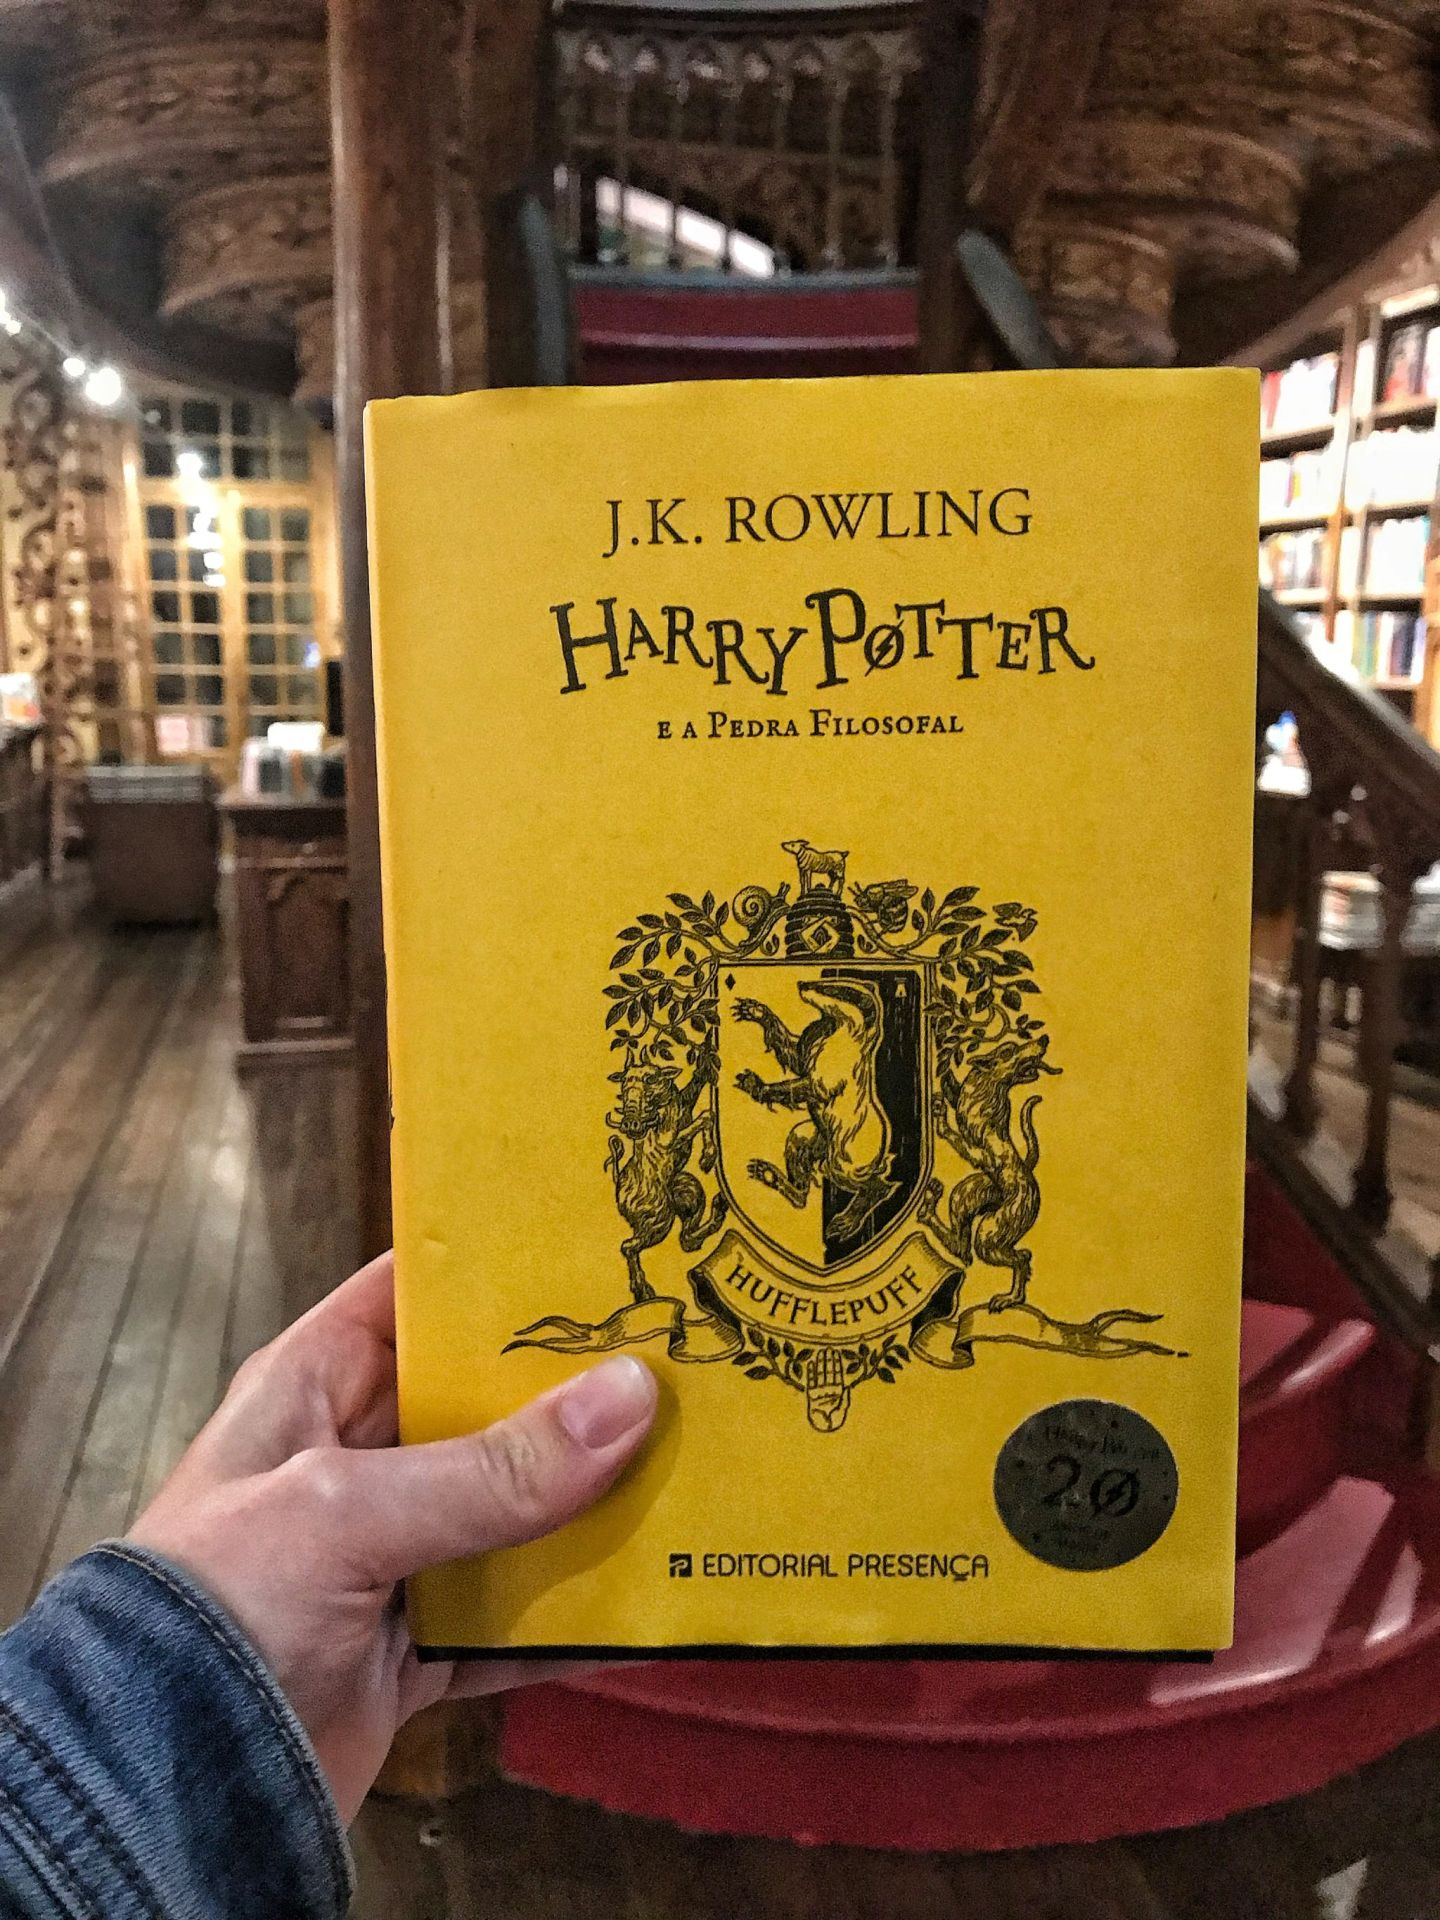 Harry Potter at Livraria Lello Book store Porto